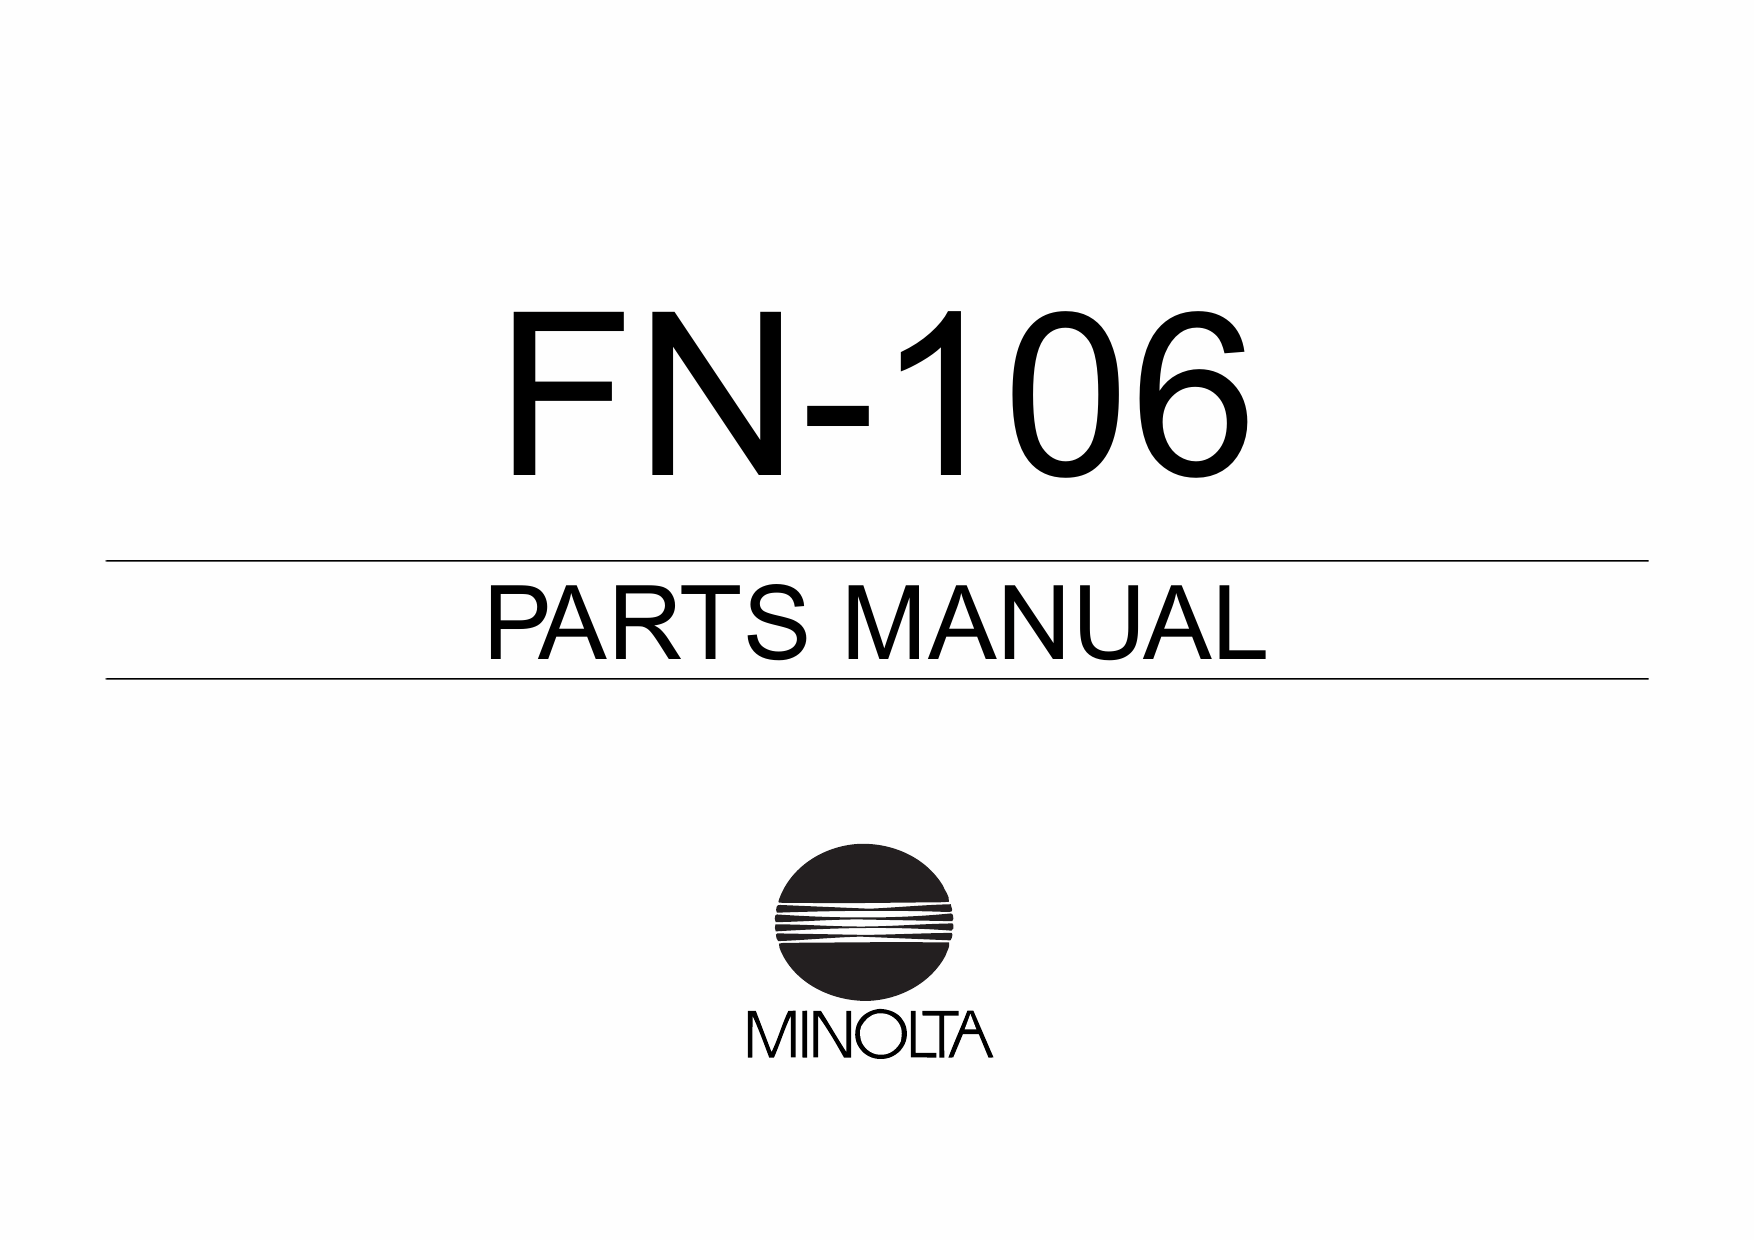 Konica-Minolta Options FN-106 Parts Manual-1